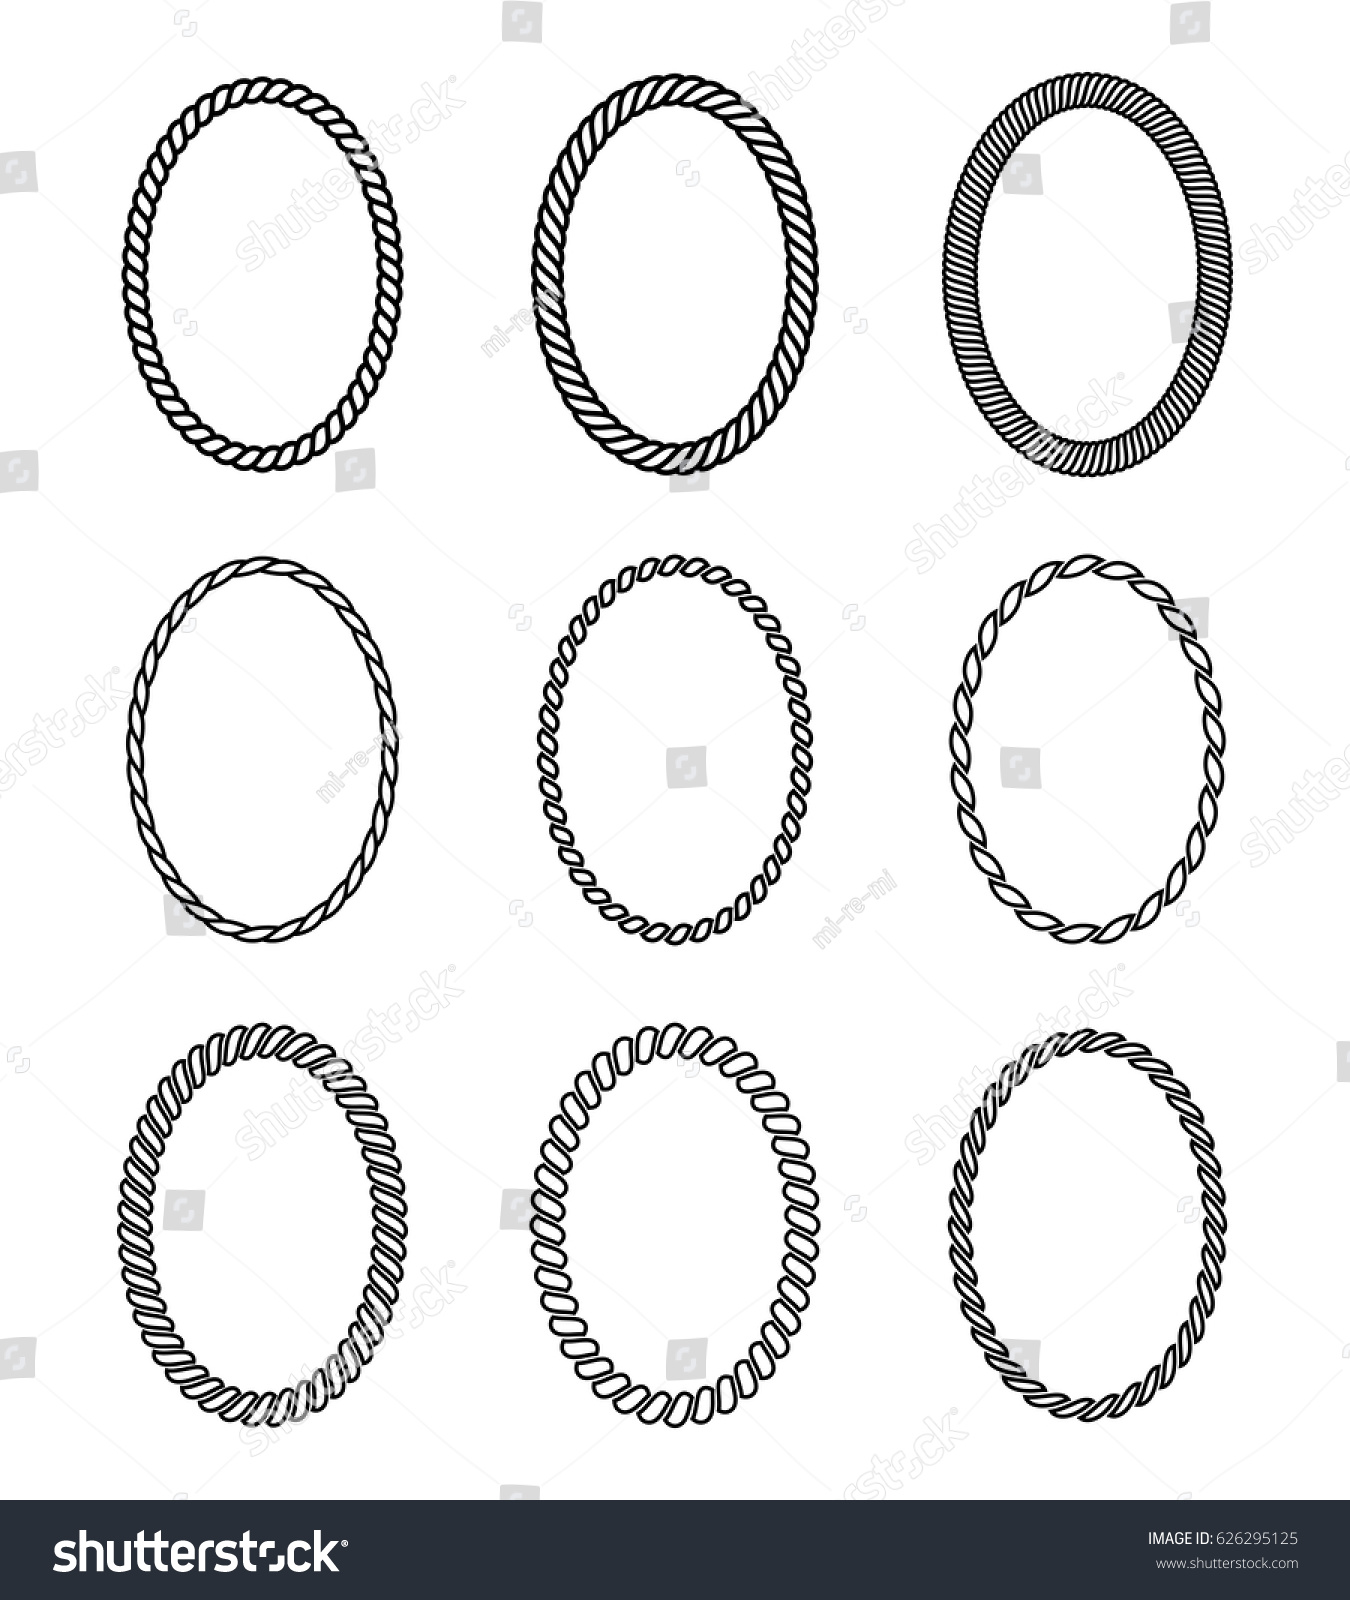 vector rope set oval frames collection のベクター画像素材